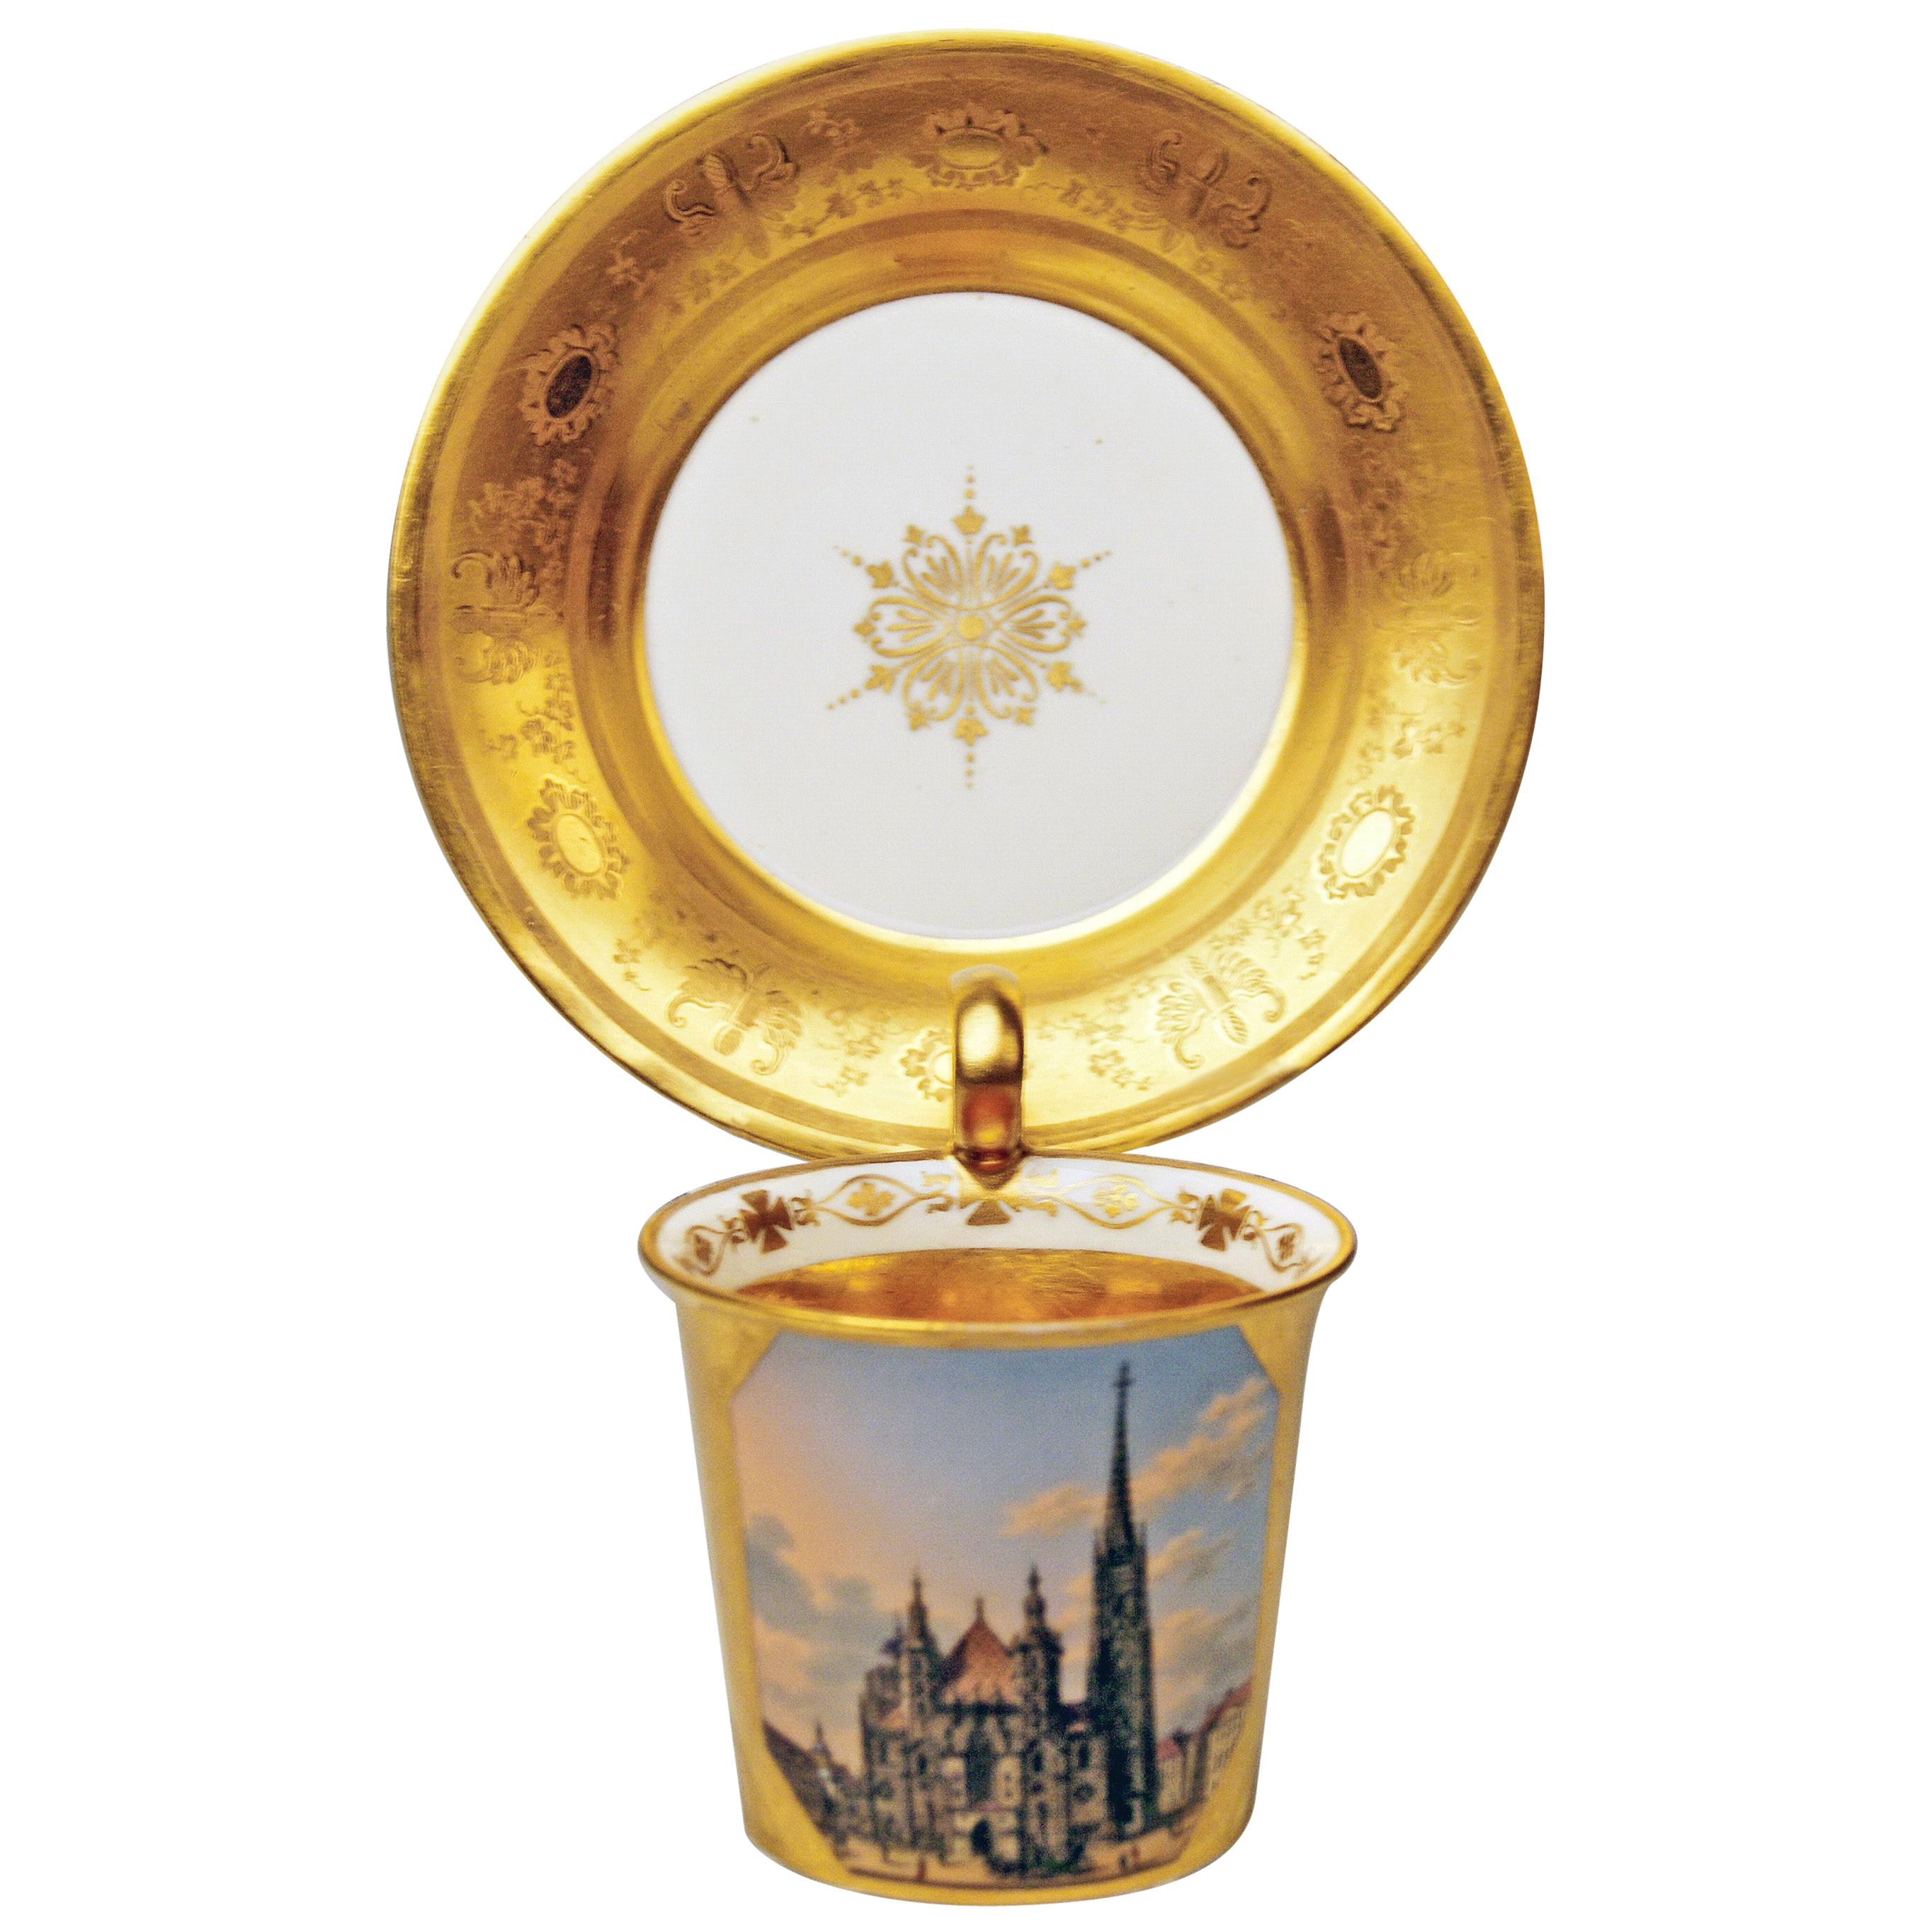 Vienna Imperial Porcelain Golden Cup Saucer Painted Veduta Vienna 1822 and 1838